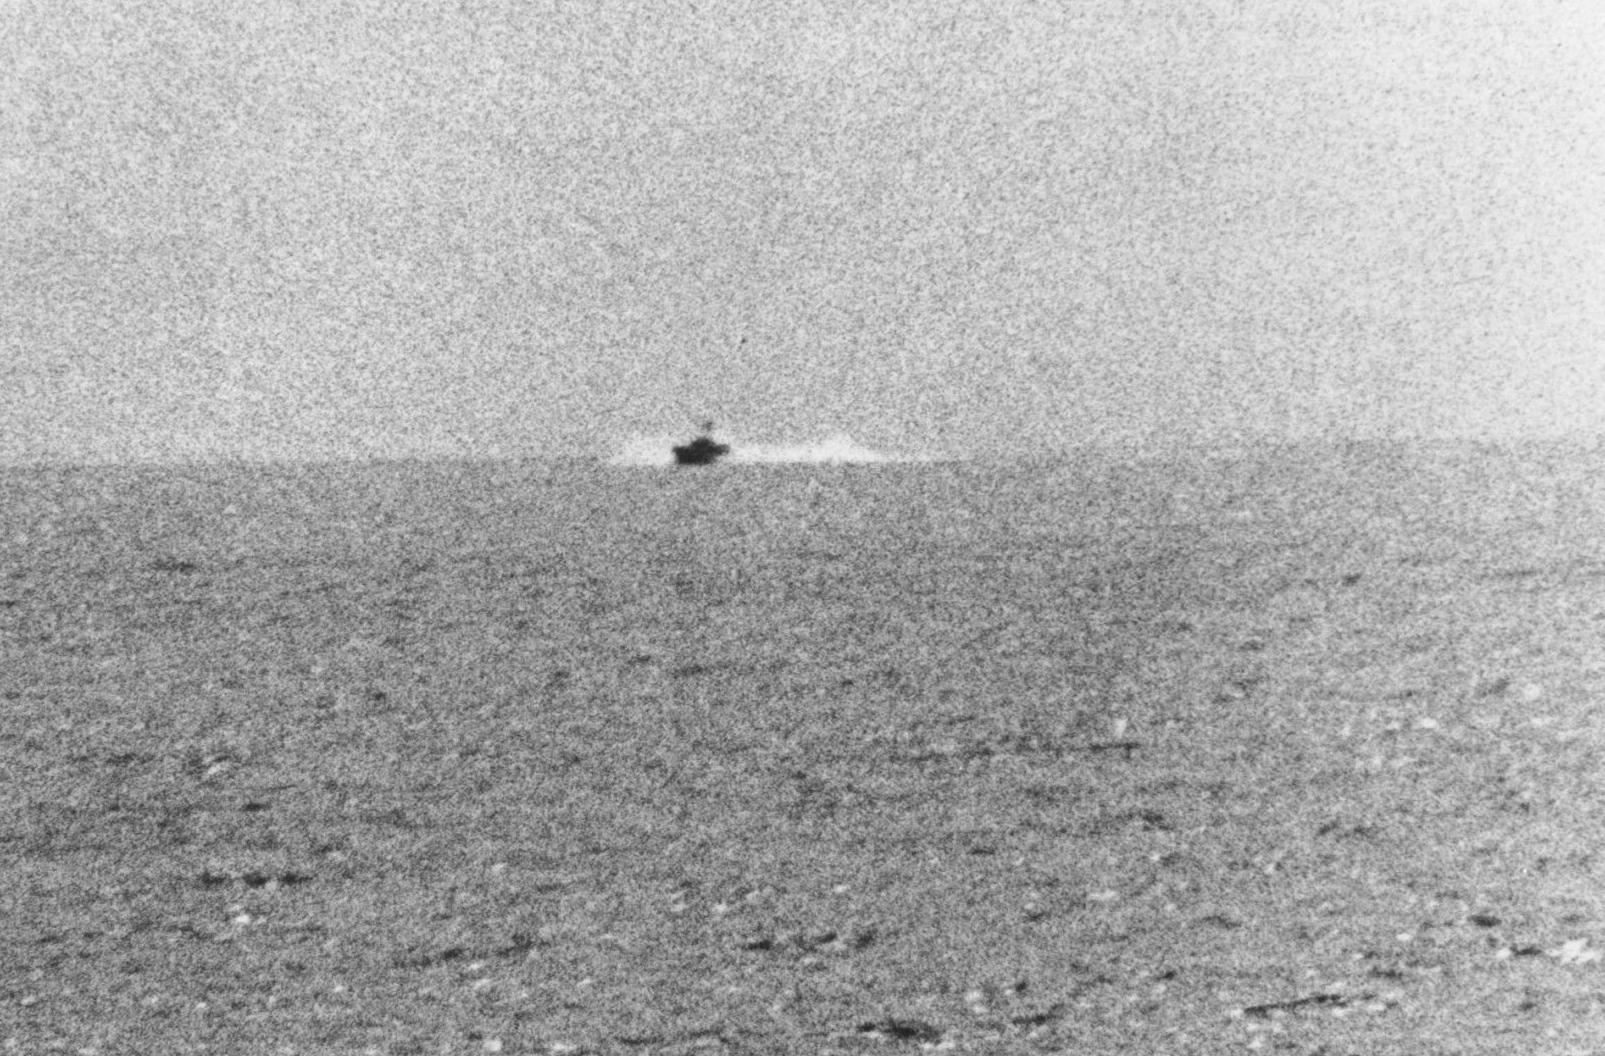 North Vietnamese Torpedo Boat Approaching the USS Maddox